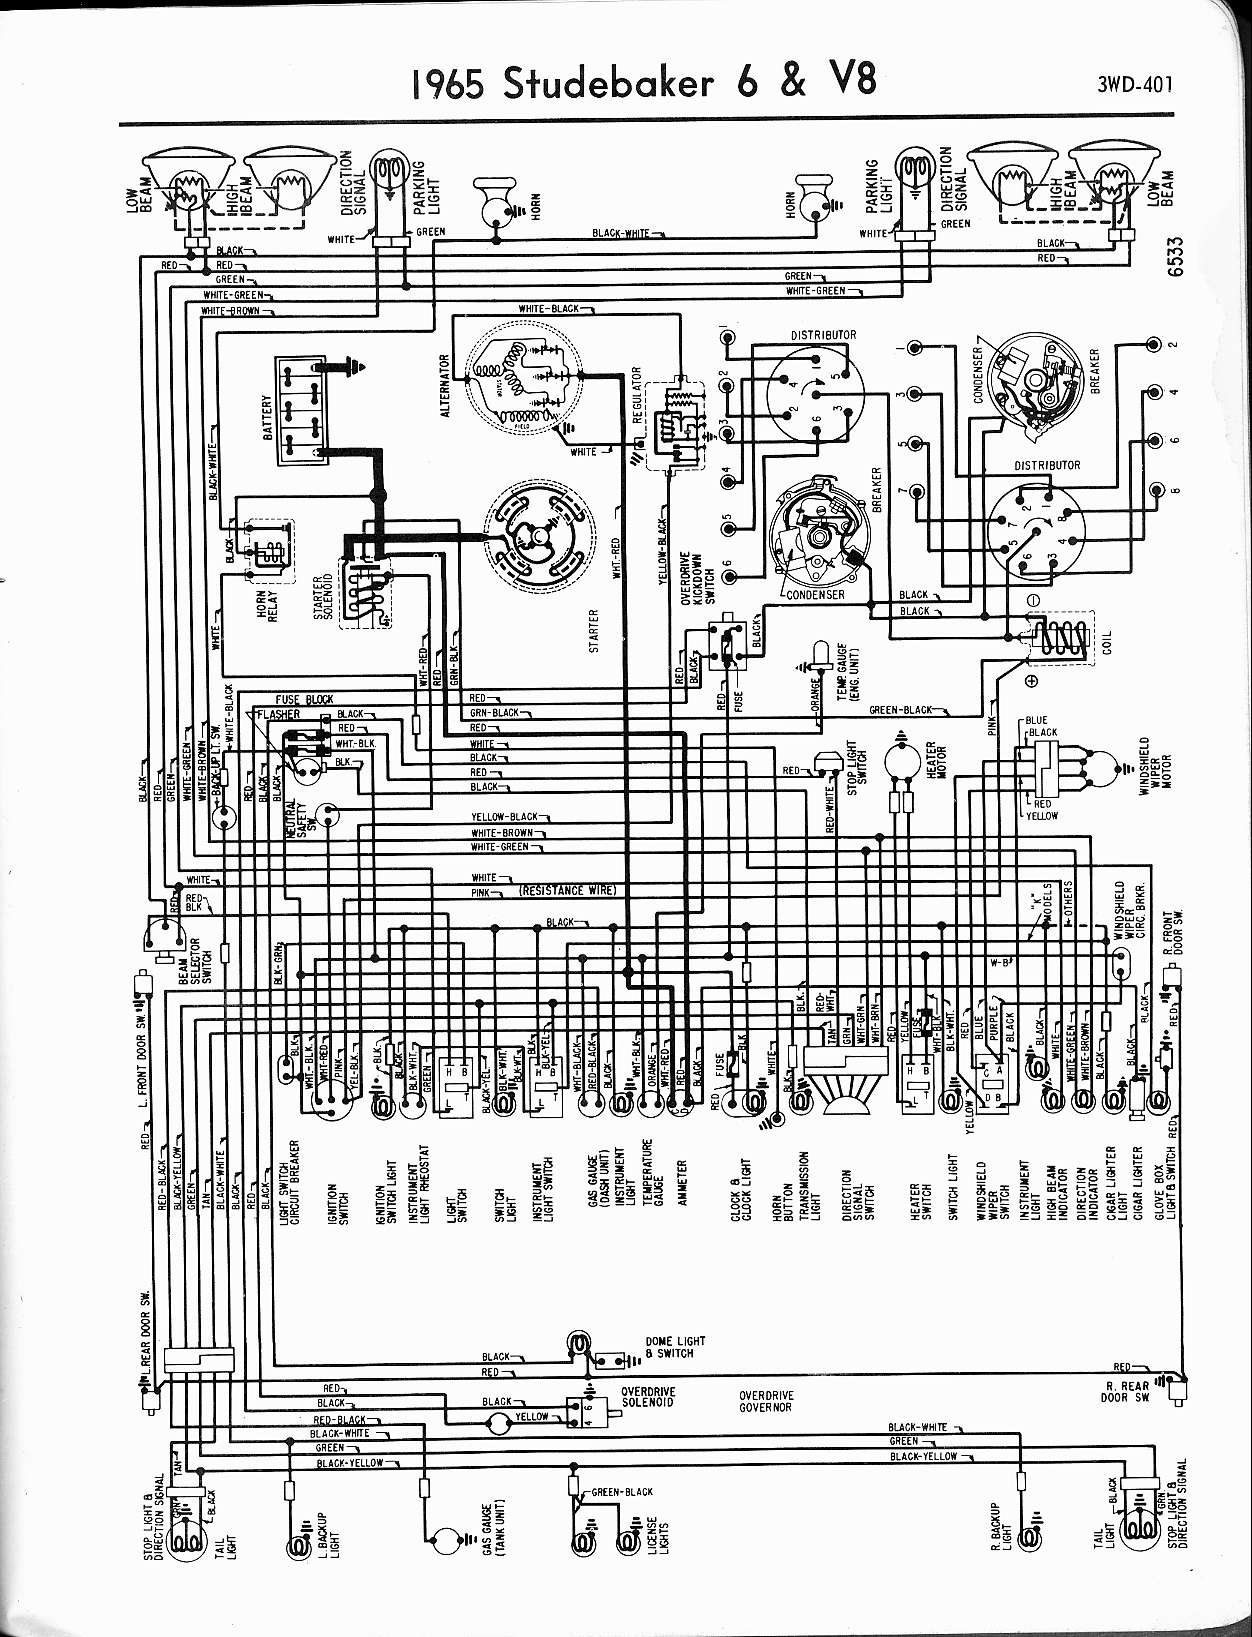 1963 avanti wiring diagram automotive wiring diagram u2022 rh nfluencer co 2006 Avanti 1976 Avanti